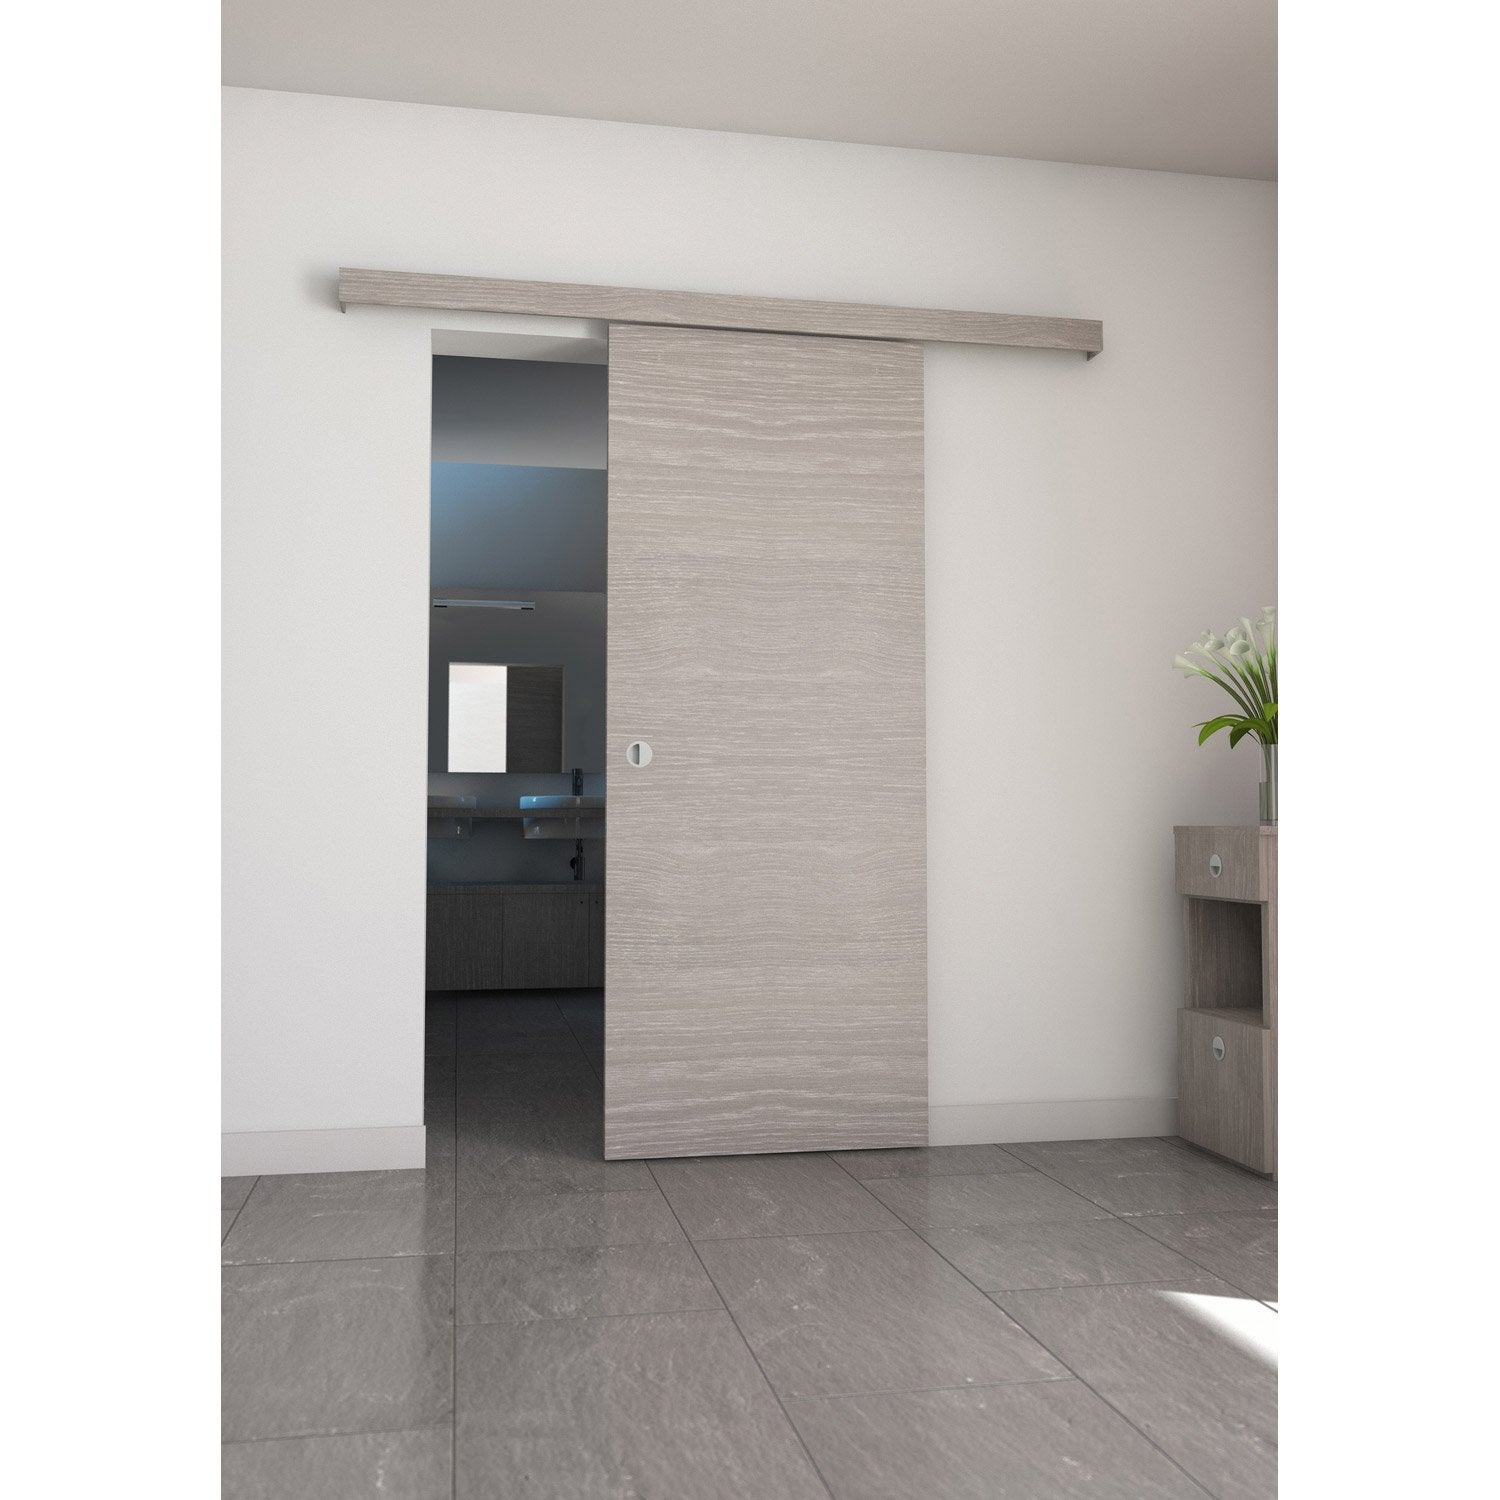 Ensemble porte coulissante coulicool mdf rev tu aluminium leroy merlin - Dimension porte coulissante interieur ...